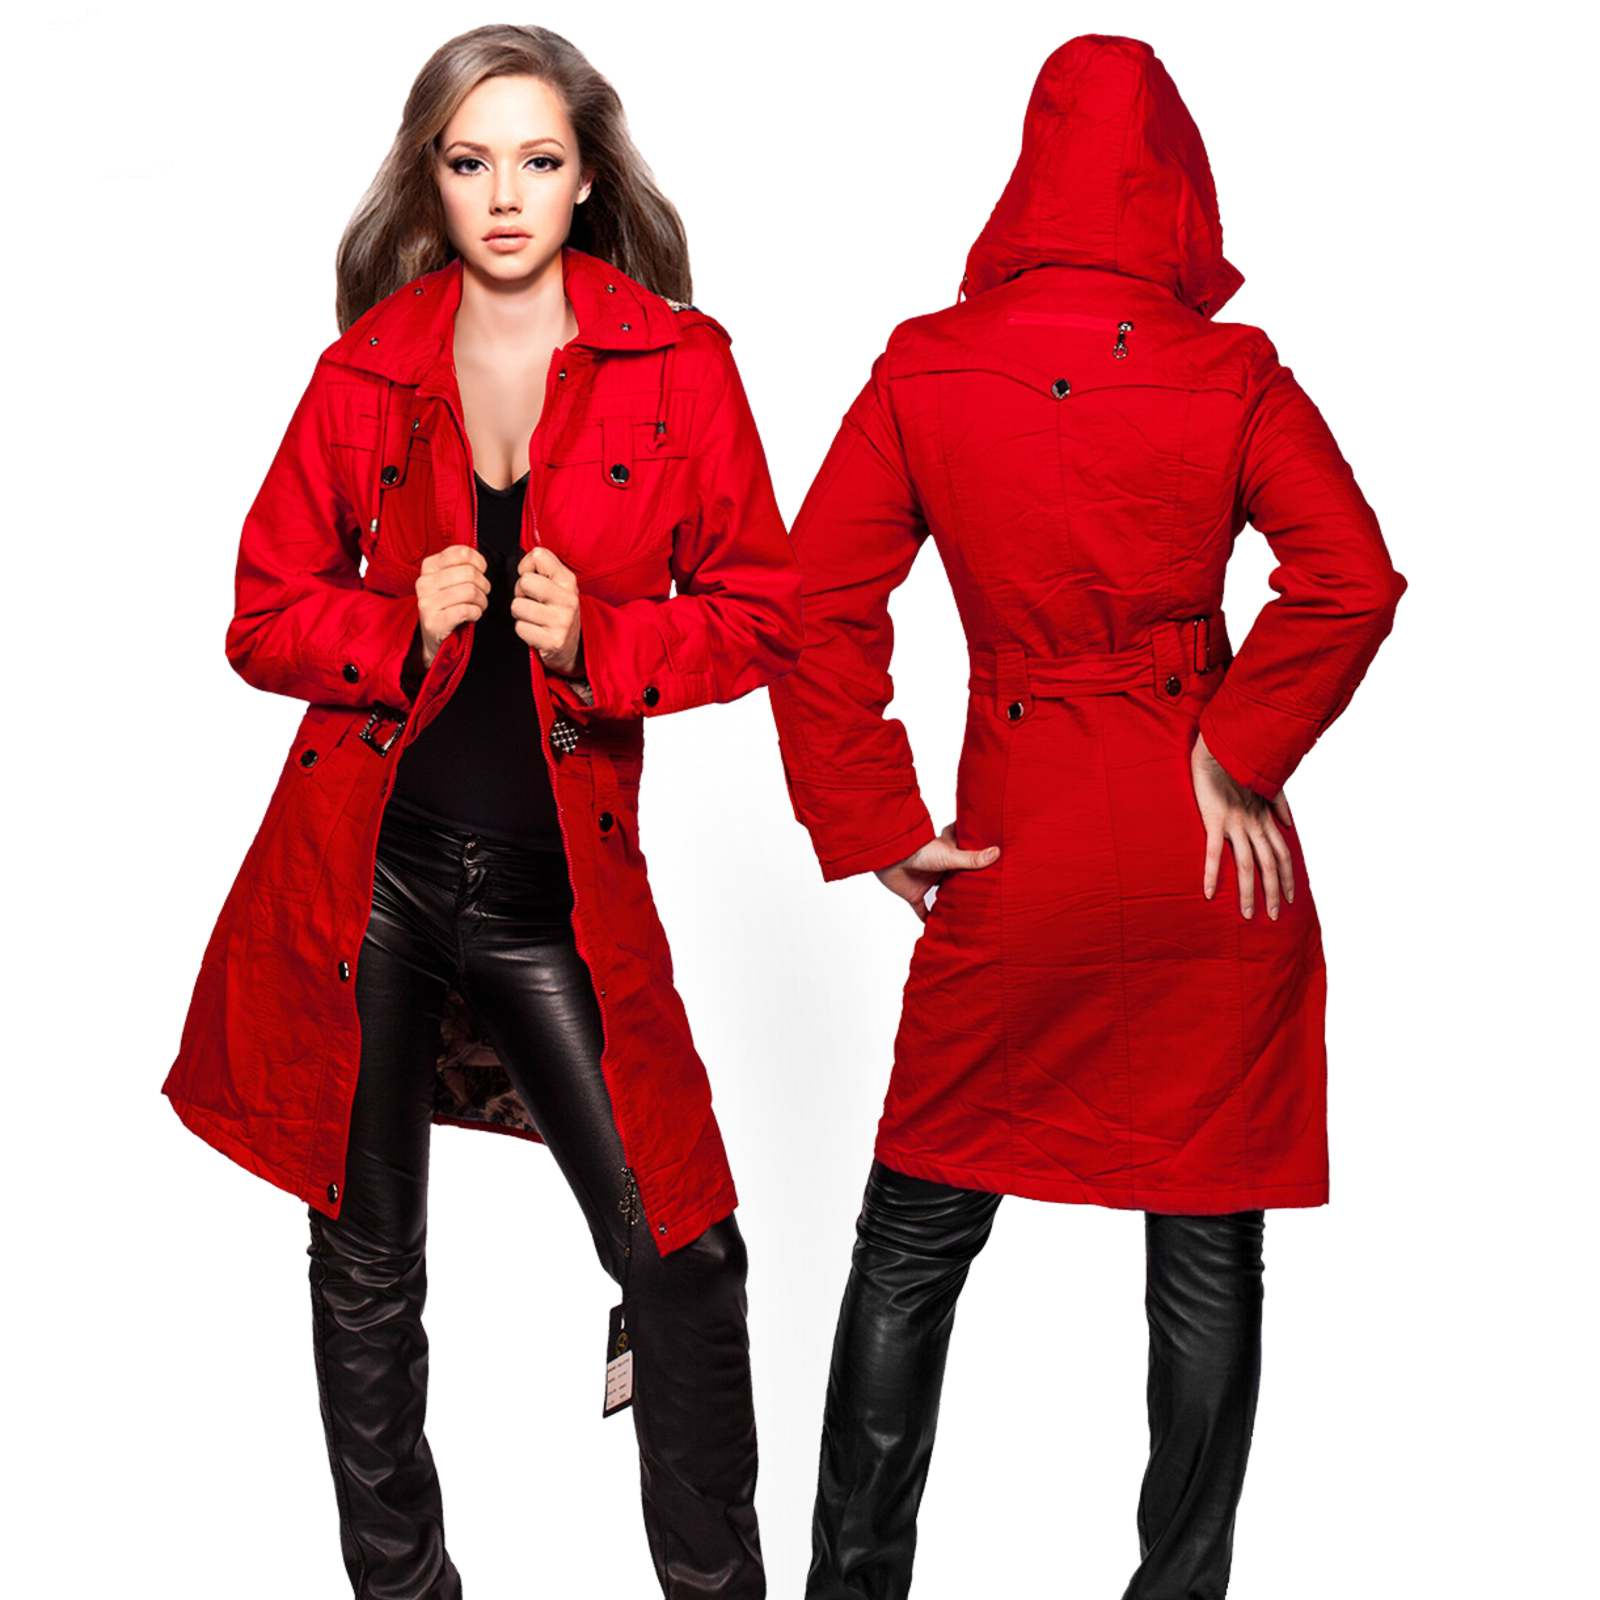 luxus damen wintermantel lang jacke tailliert winterjacke parka kapuze rot s ebay. Black Bedroom Furniture Sets. Home Design Ideas